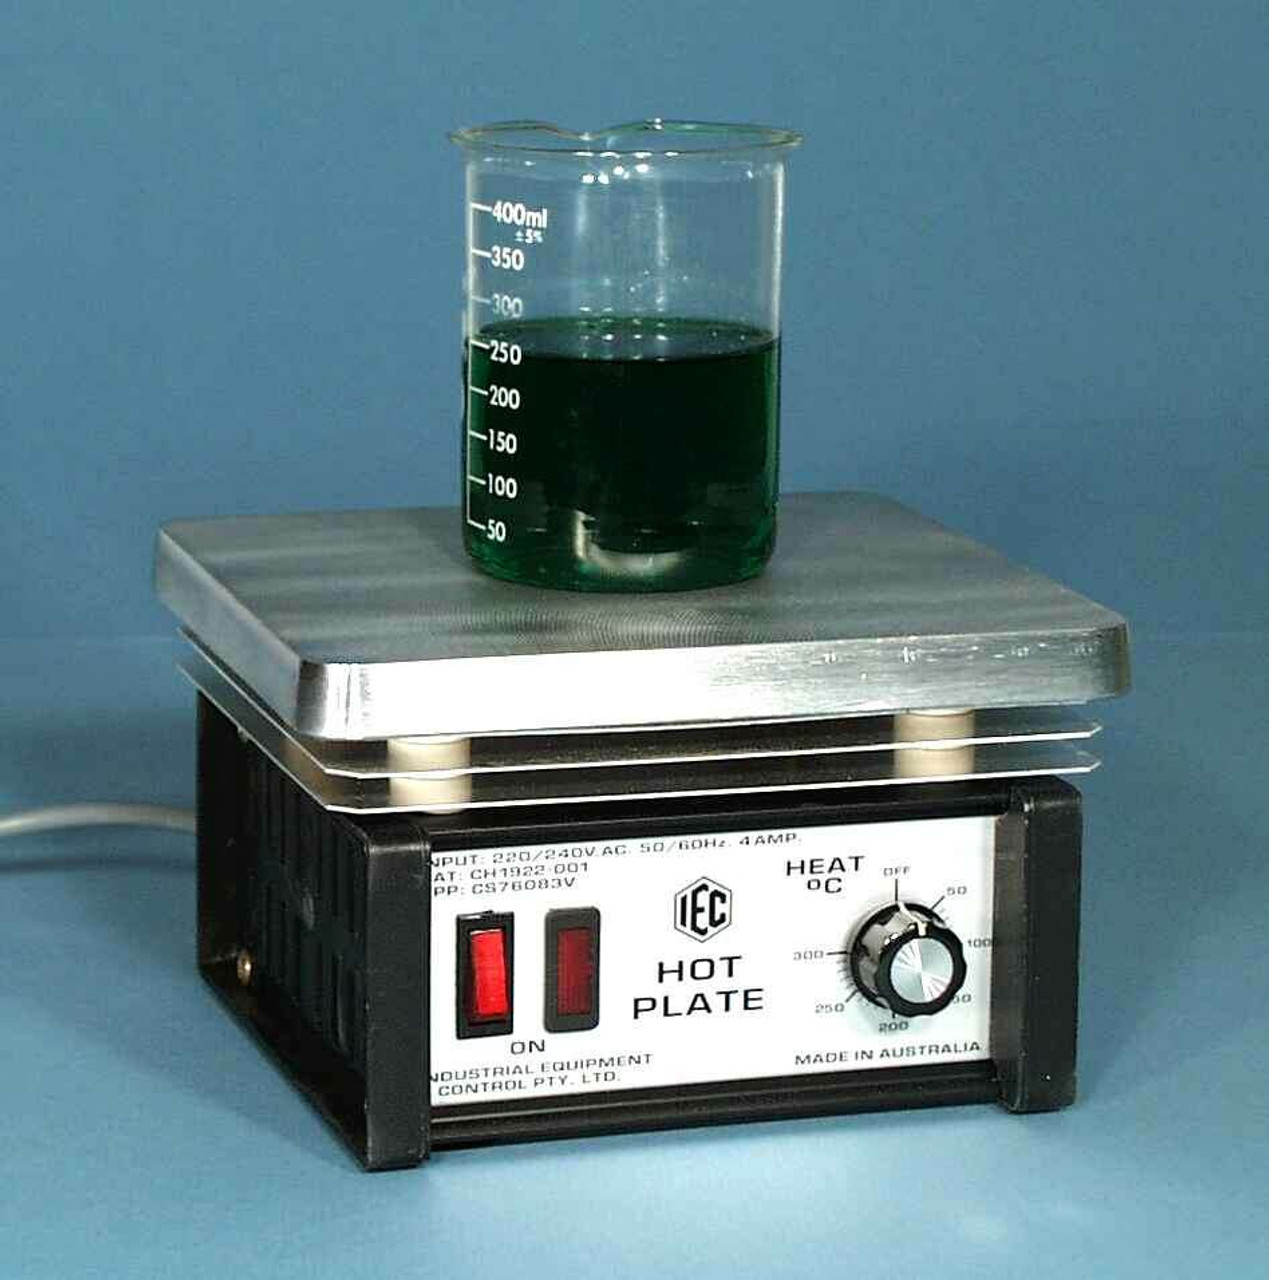 Lab Hotplate with Thermostat 320°C Control, 200x180mm PTFE Coated Plate